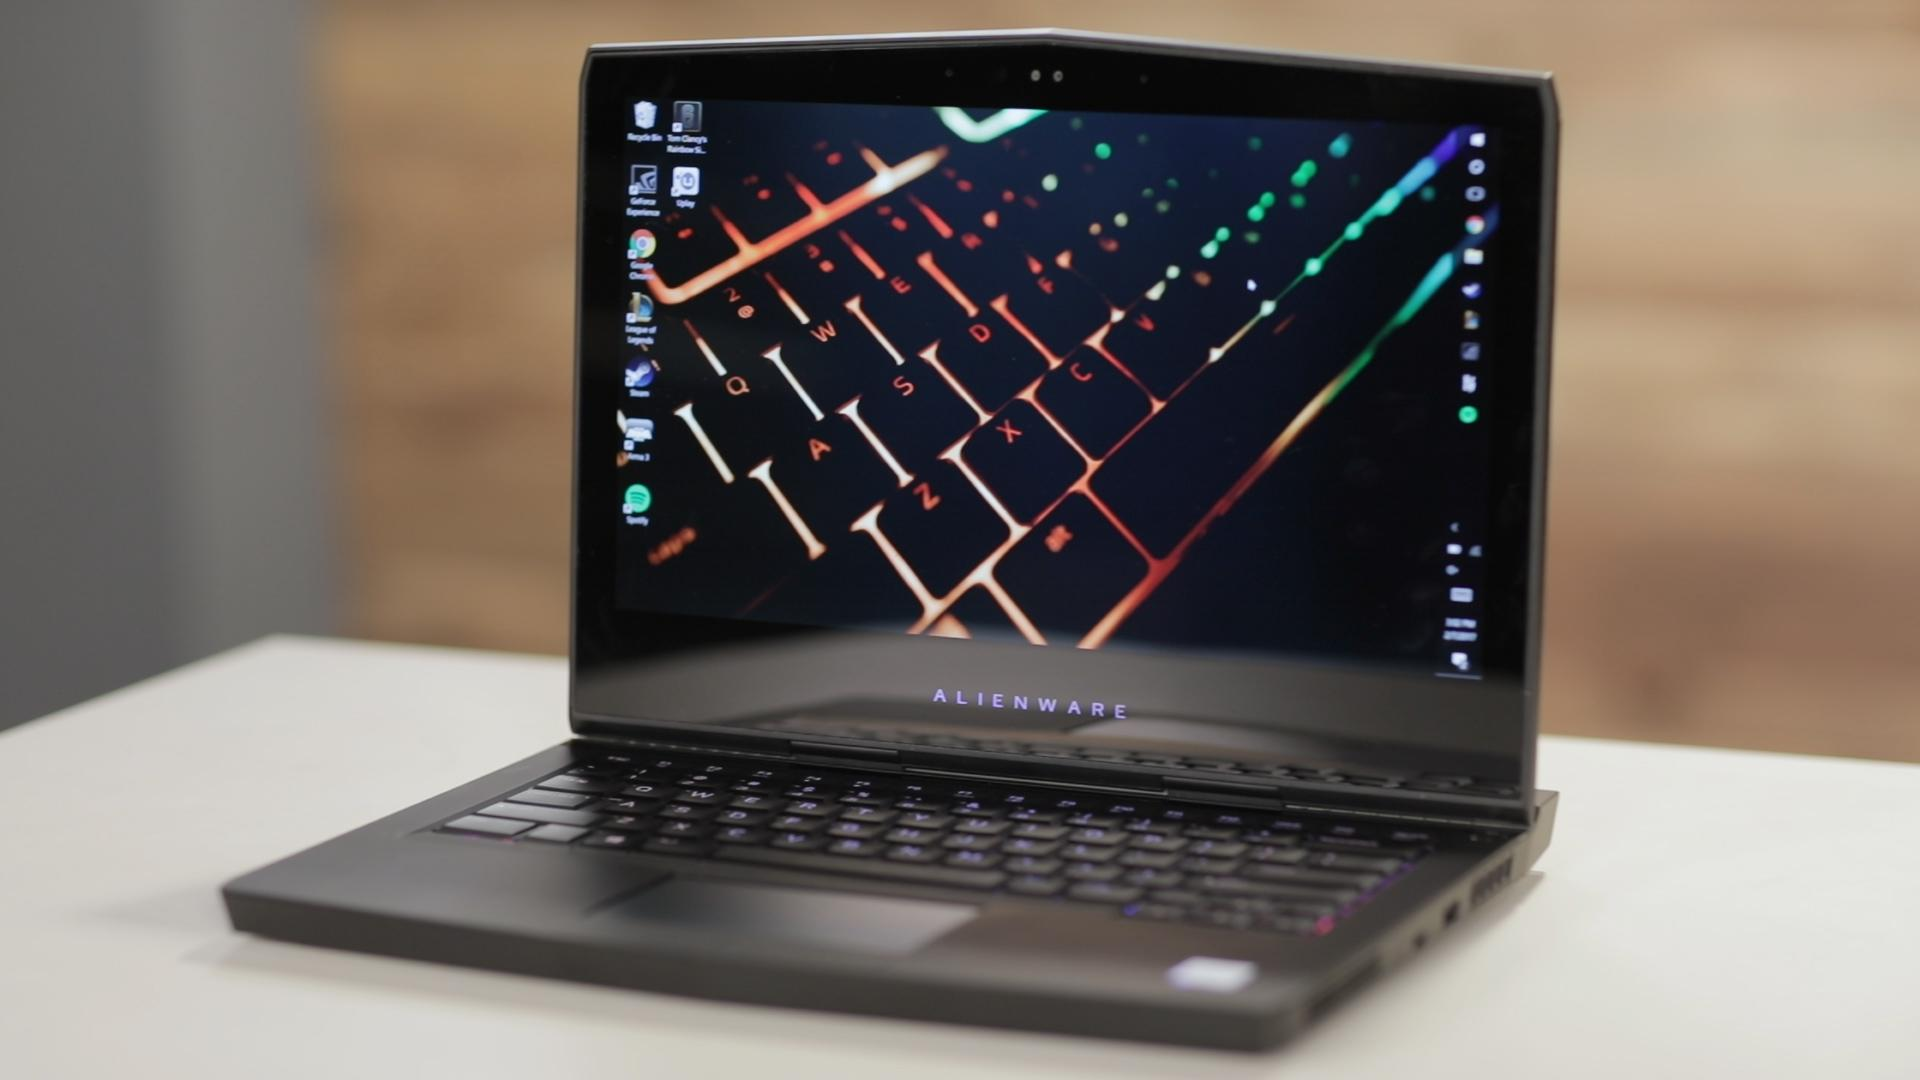 Alienware's 13 R3 VR-ready laptop